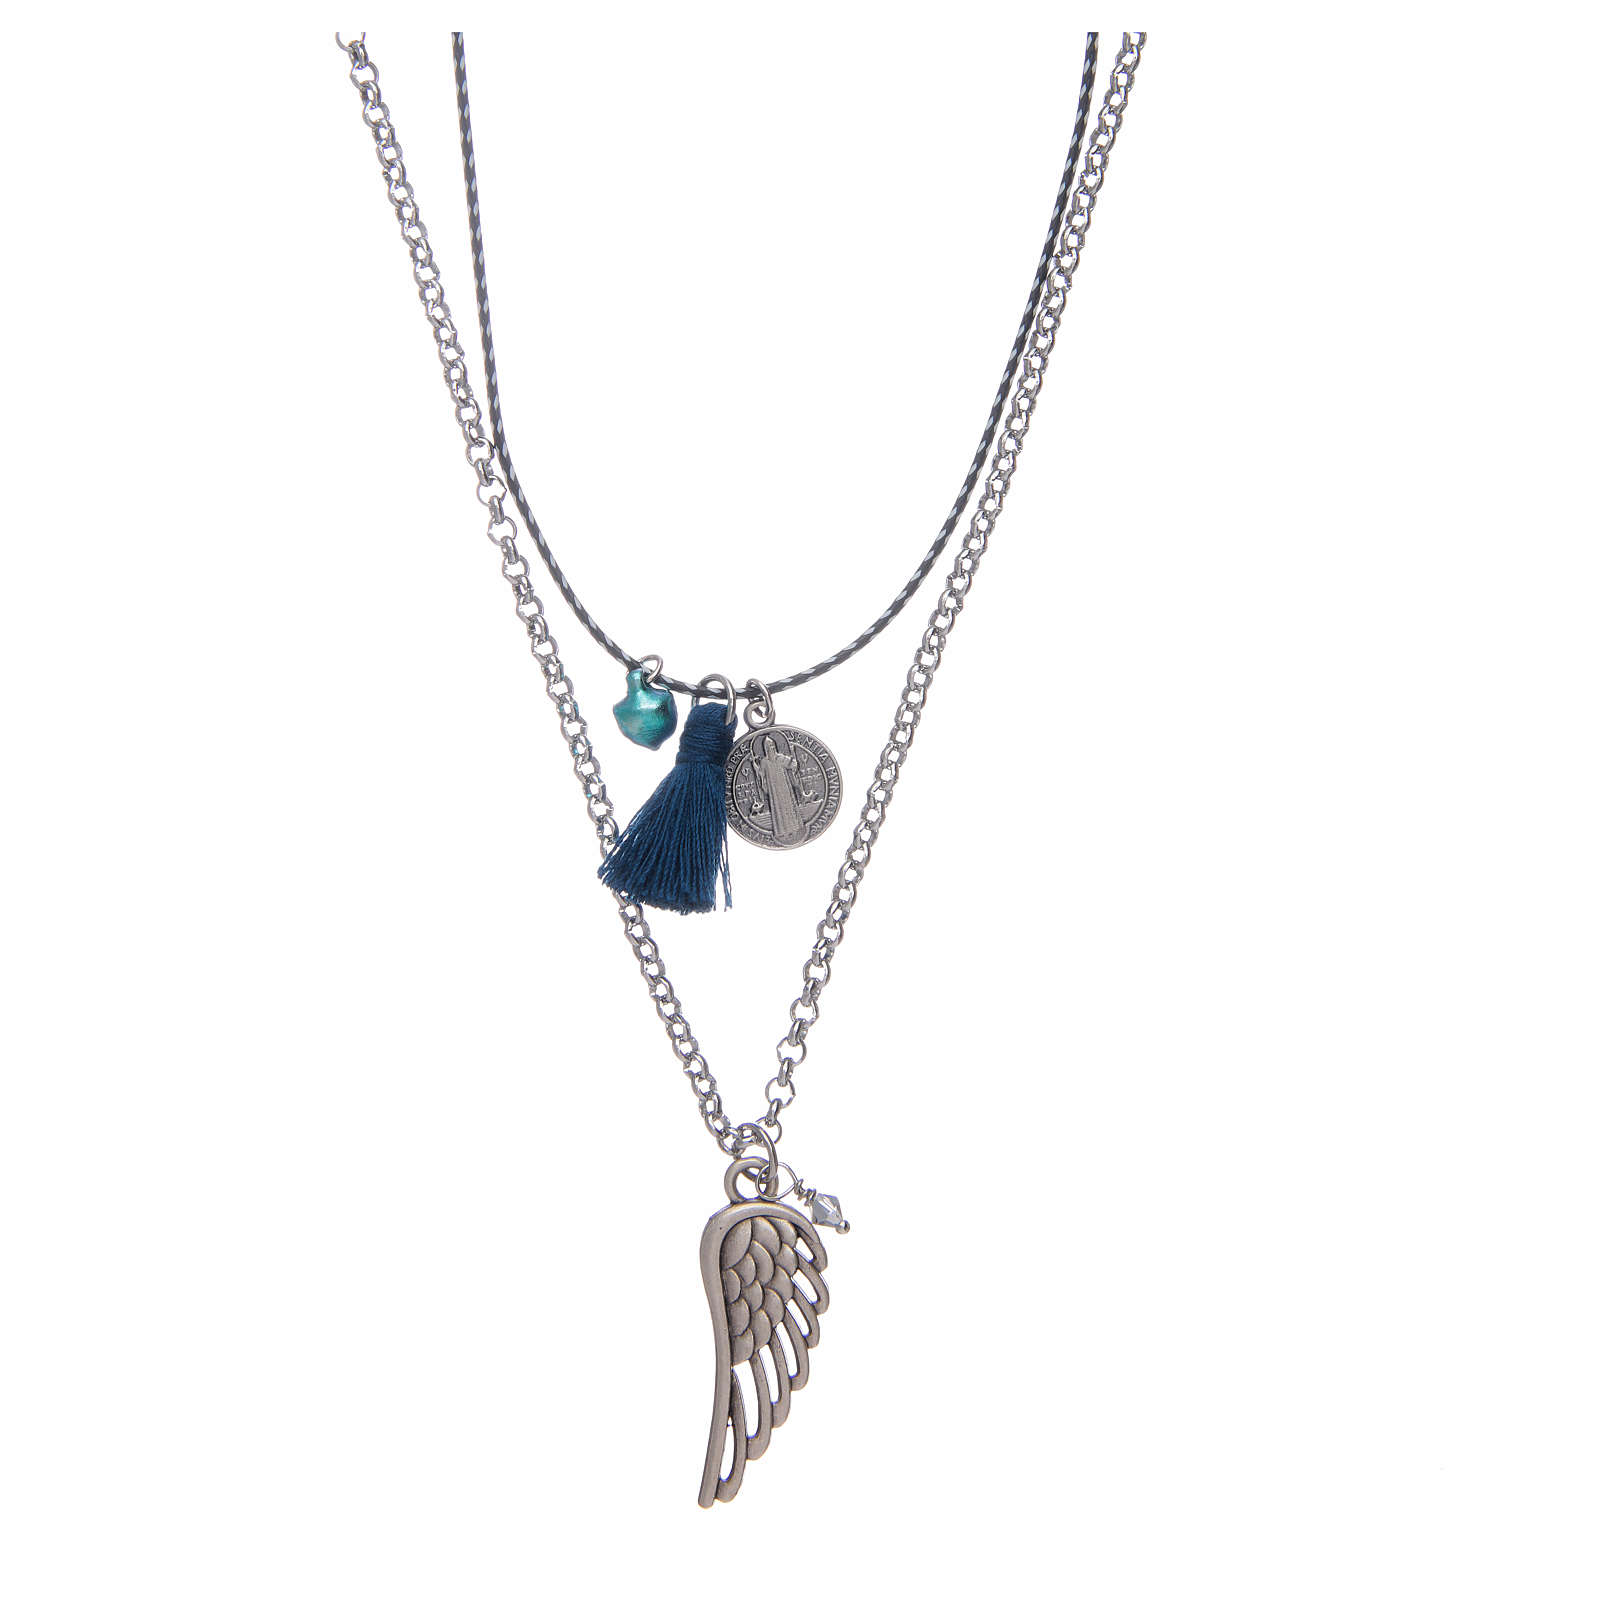 Necklace with chain, cord and blue tassel 4